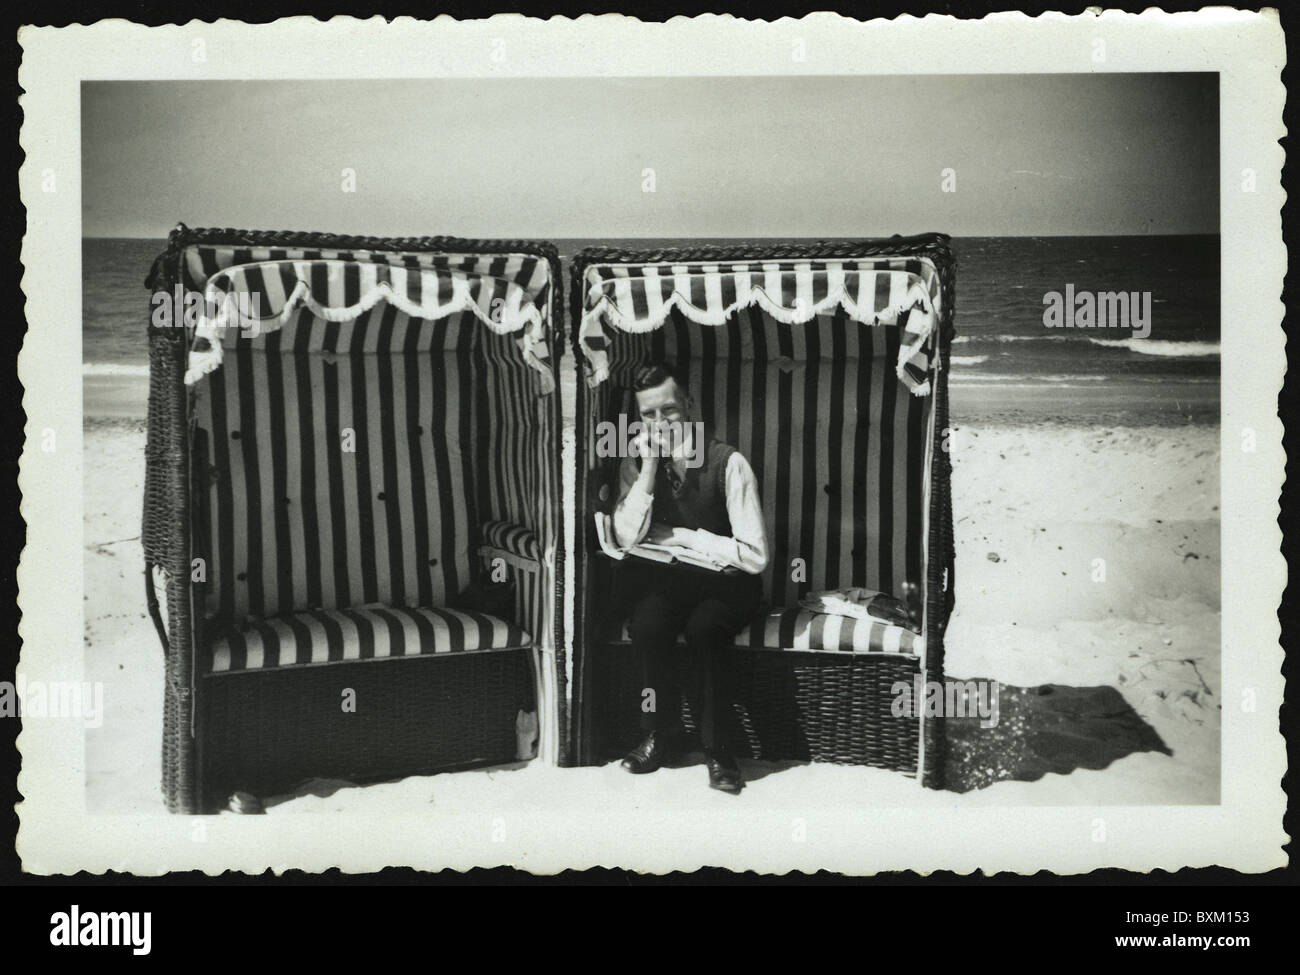 tourism, vacationer, bather sitting in beach chair, Baltic Sea, Misdroy, Poland, June 1935, Additional-Rights-Clearences - Stock Image